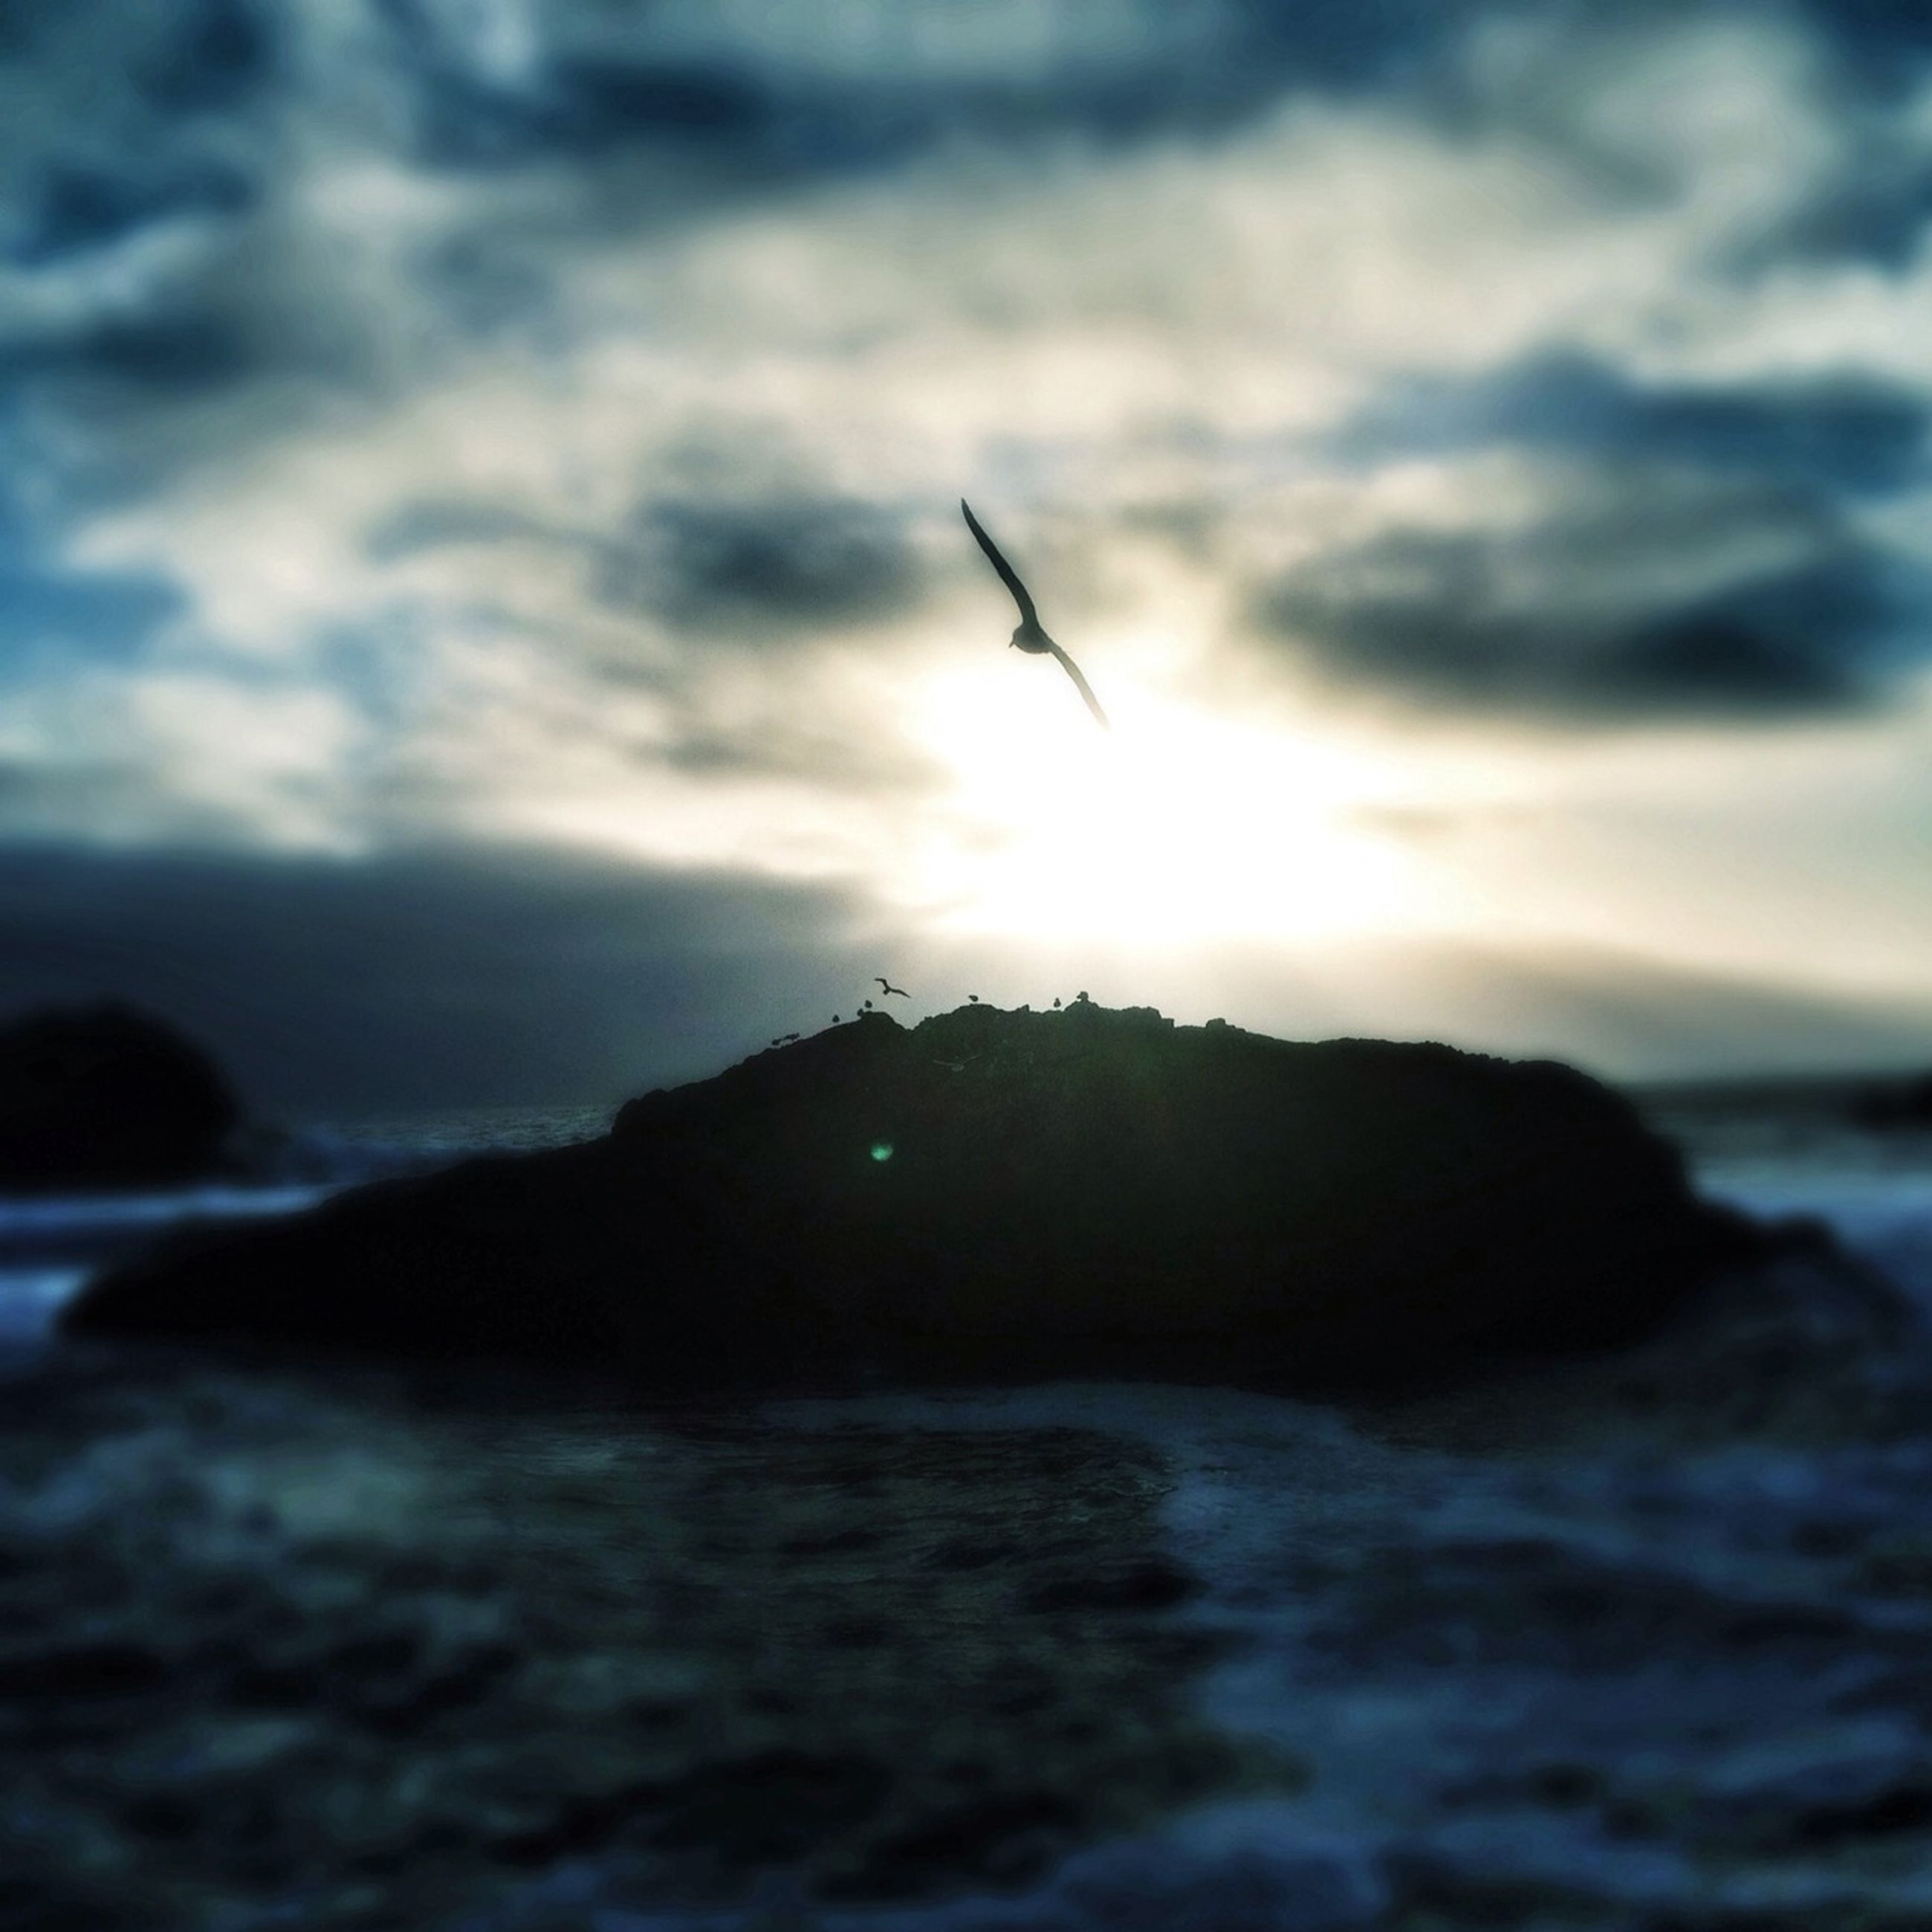 flying, sea, bird, sky, water, scenics, sunset, beauty in nature, animal themes, one animal, animals in the wild, nature, tranquil scene, cloud - sky, wildlife, tranquility, mid-air, outdoors, cloud, idyllic